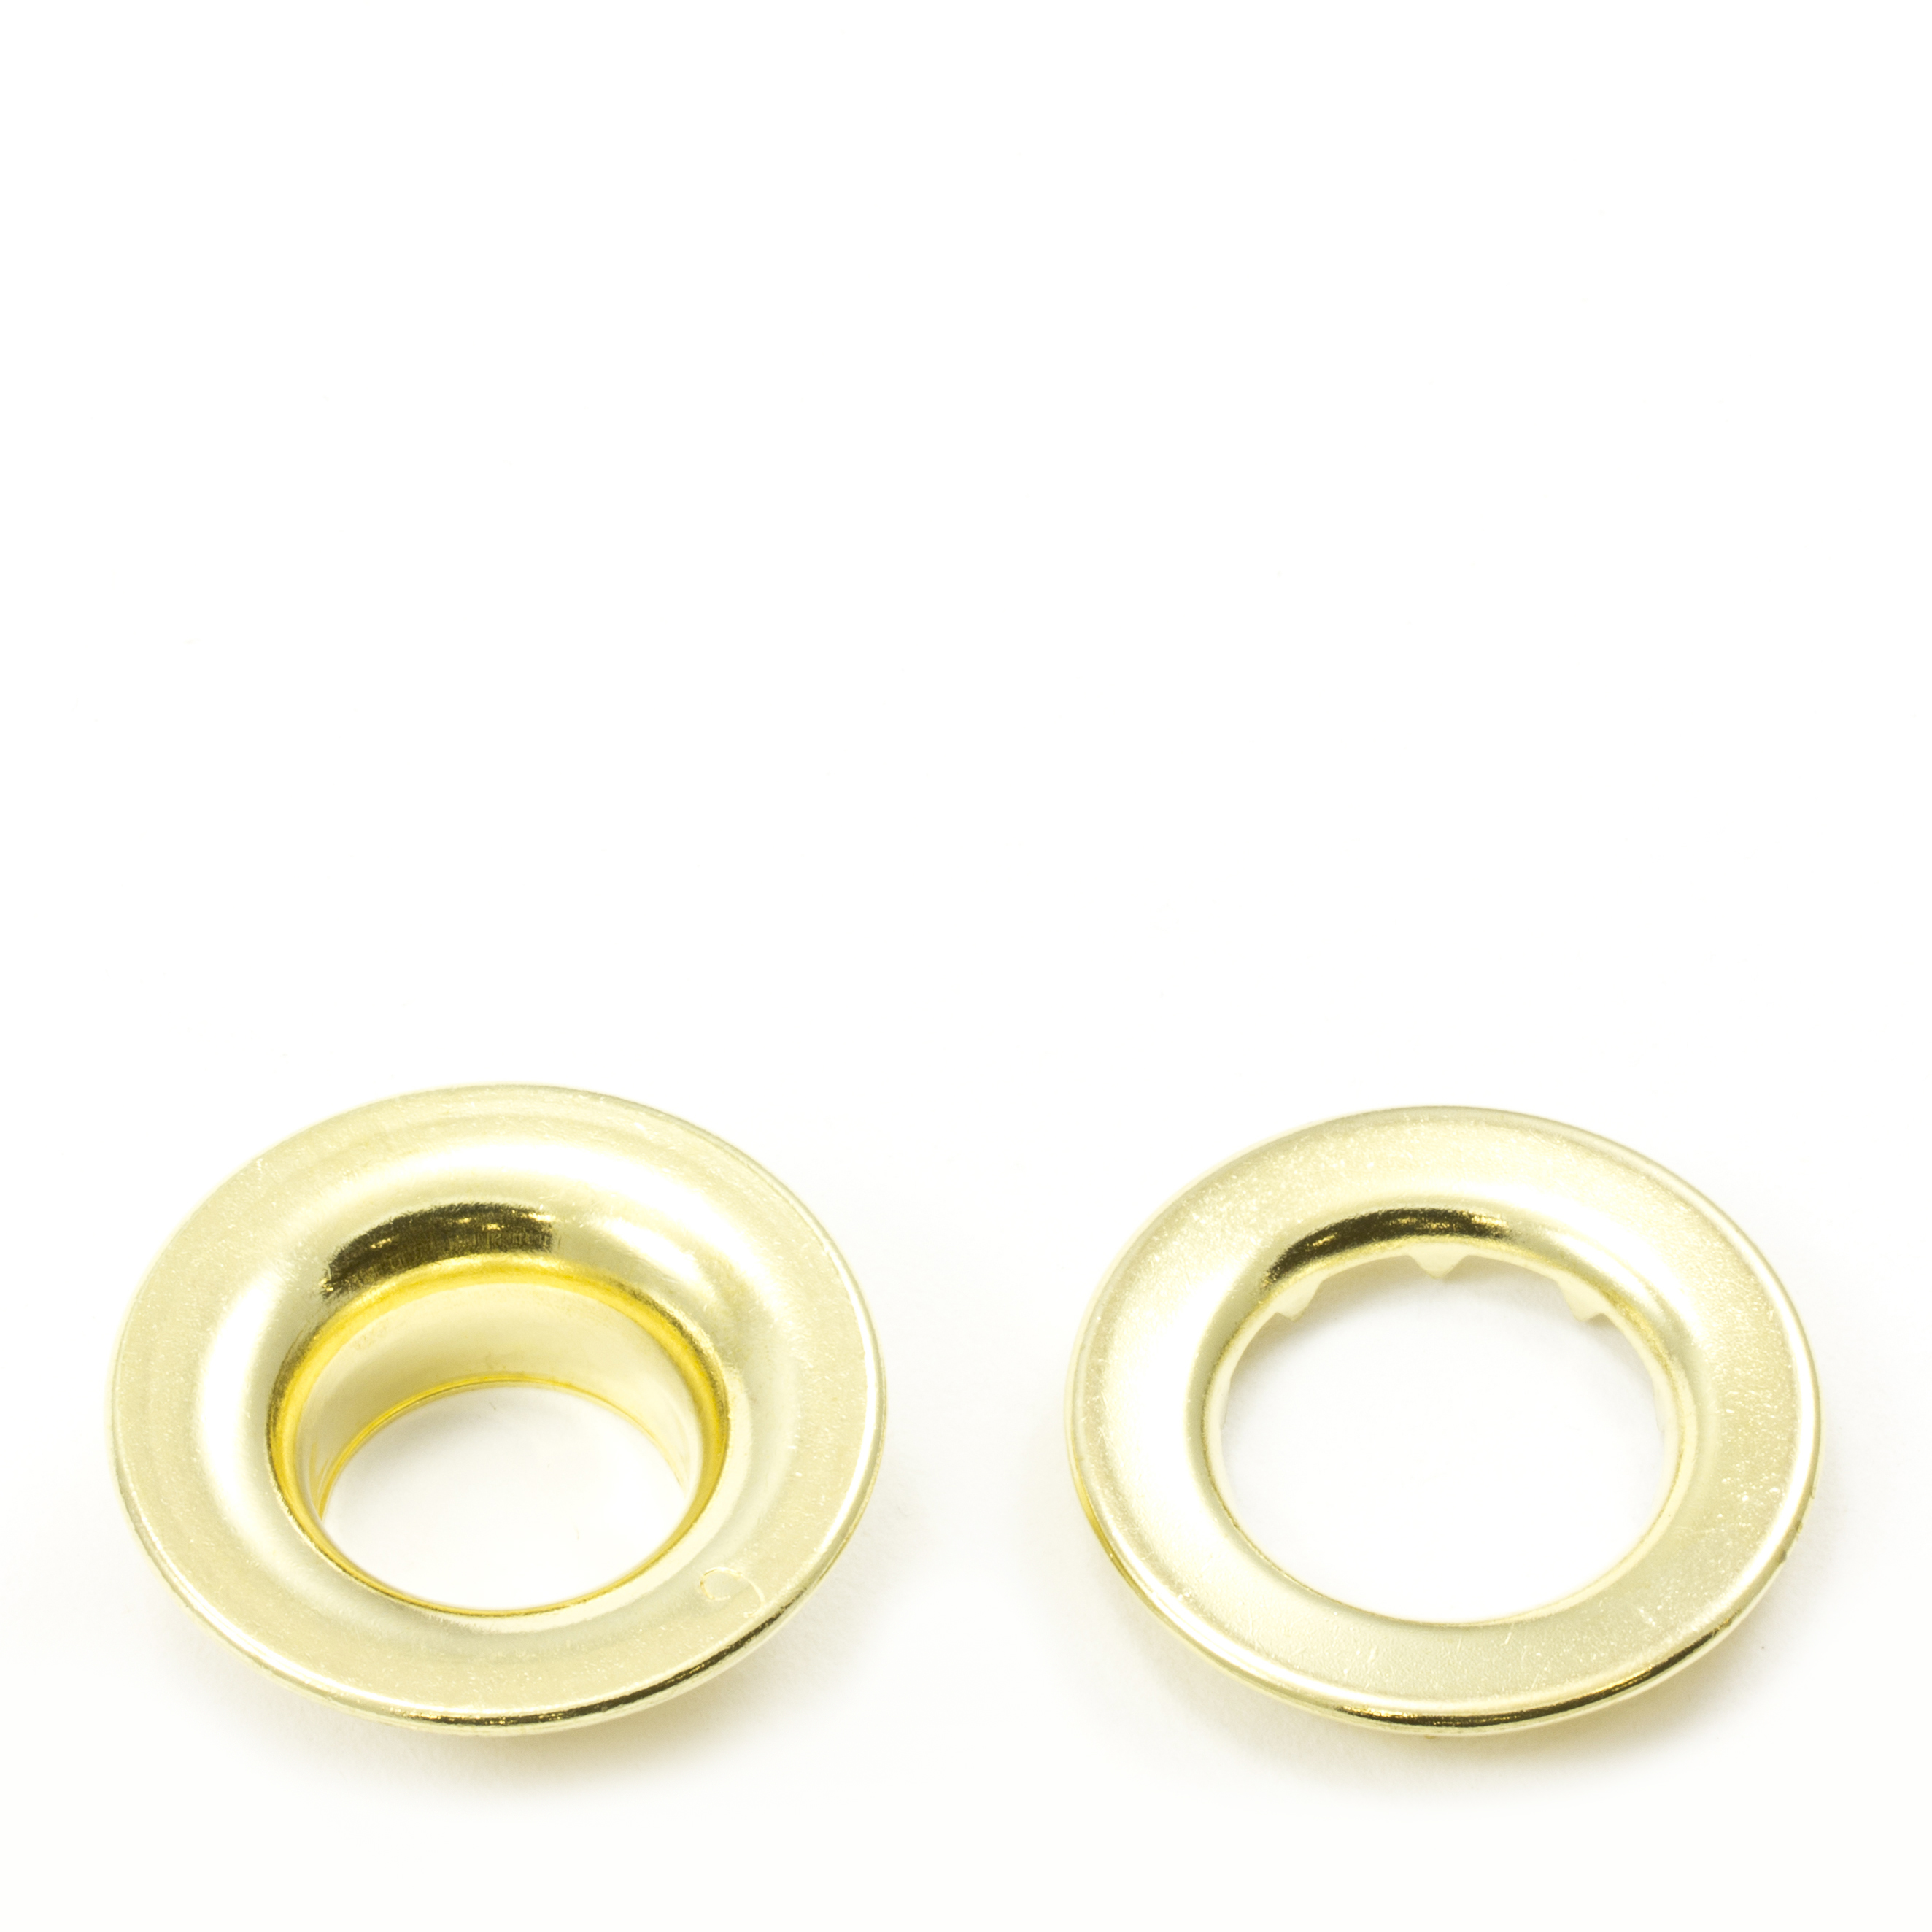 Thumbnail Rolled Rim Grommet with Spur Washer #6 Brass 3/4 1